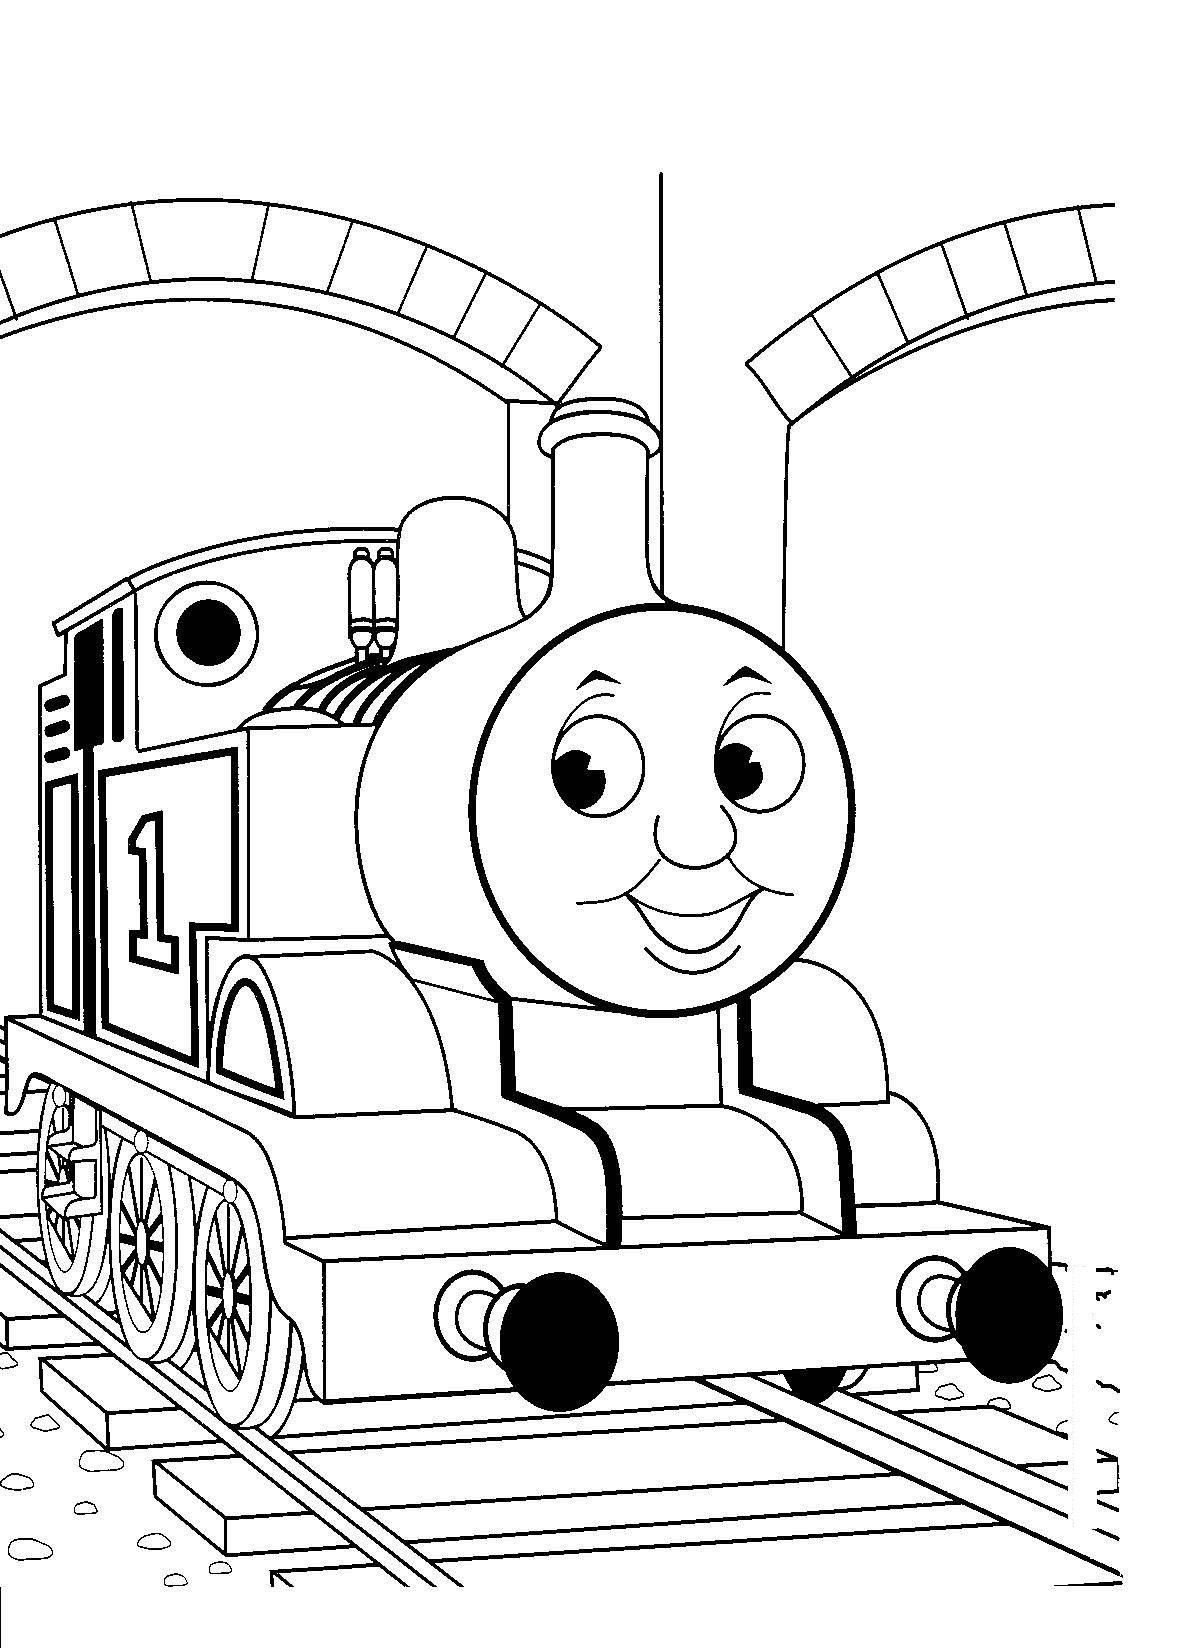 coloring page of train engine free printable train coloring pages for kids train page engine of coloring